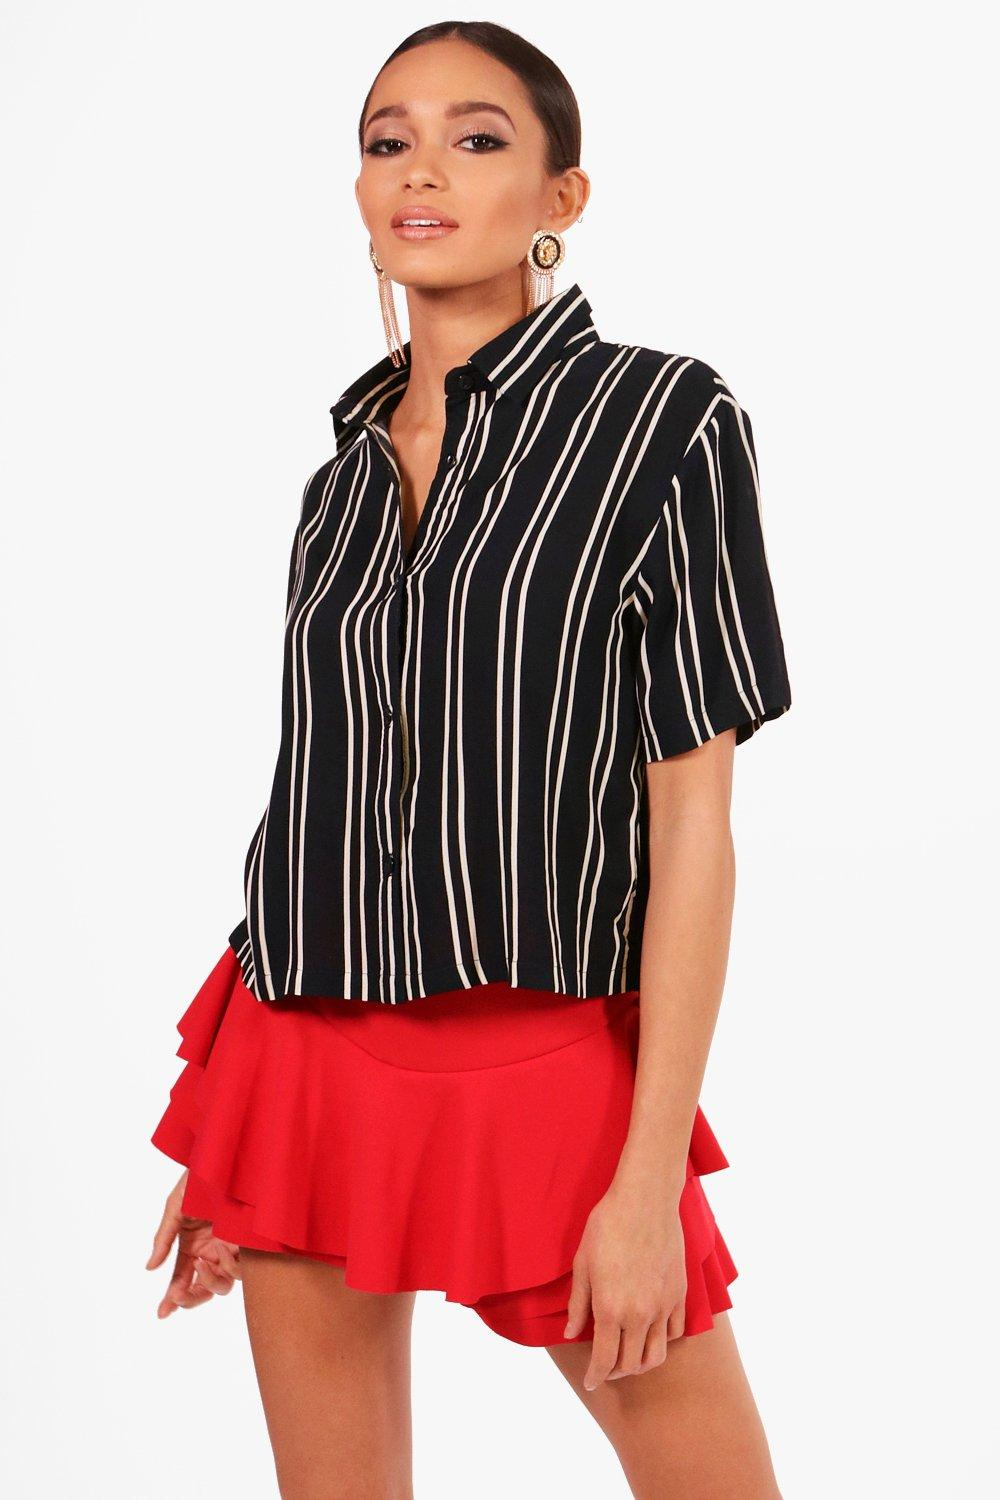 Find great deals on eBay for short sleeve striped shirt. Shop with confidence.